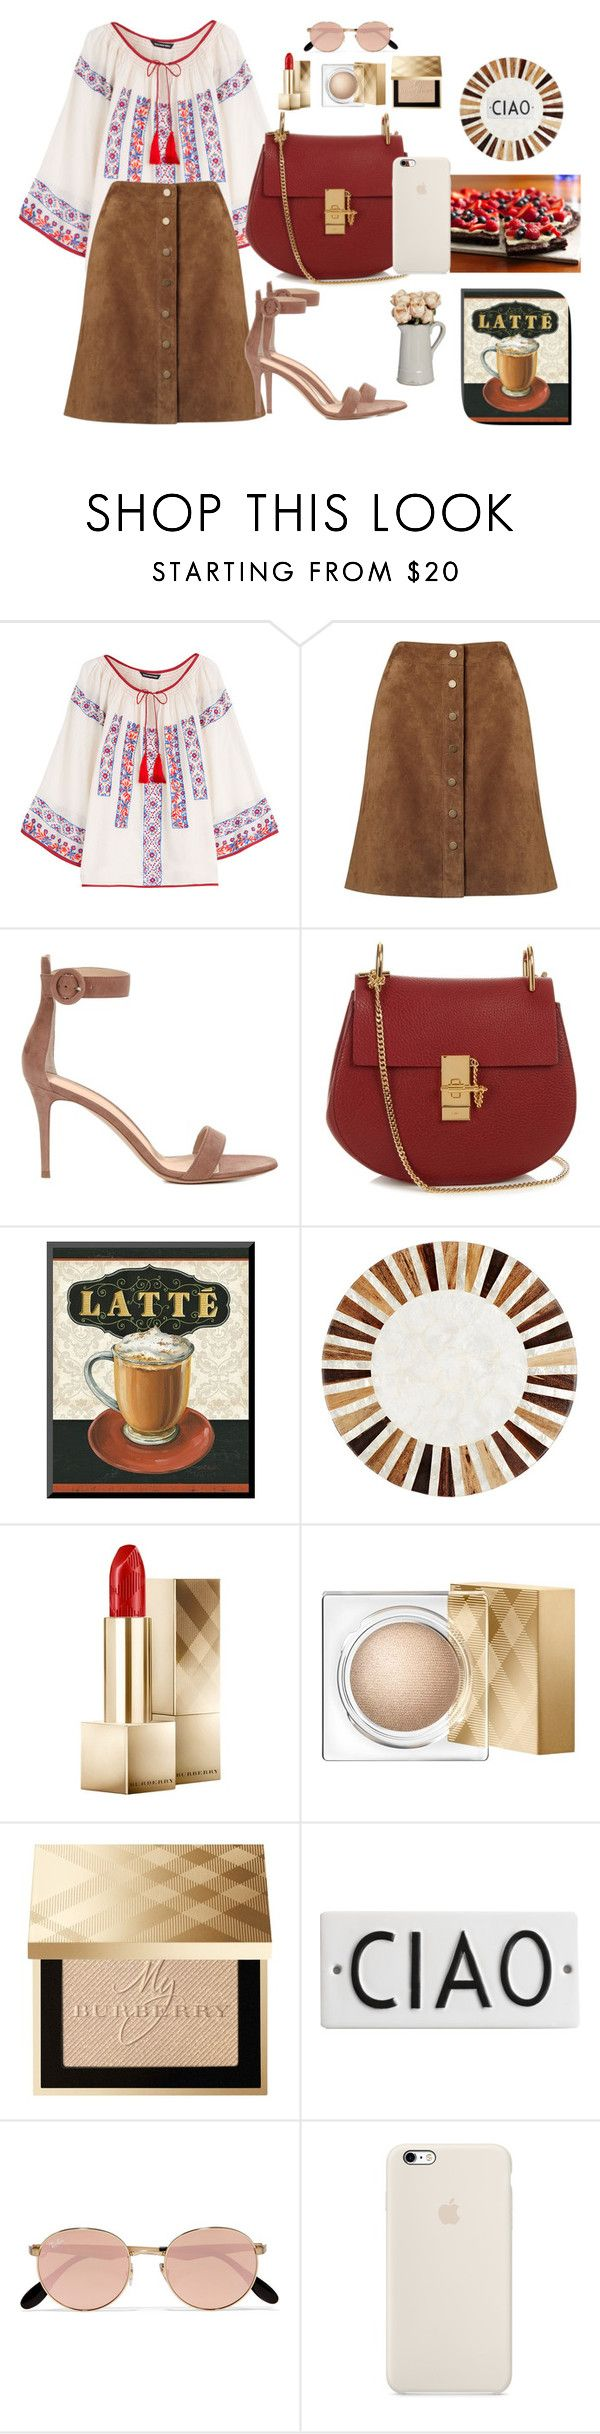 """""""Ciao"""" by austencatherine ❤ liked on Polyvore featuring KAS New York, Phase Eight, Gianvito Rossi, Chloé, Deborah Rhodes, Burberry, Rosanna and Ray-Ban"""